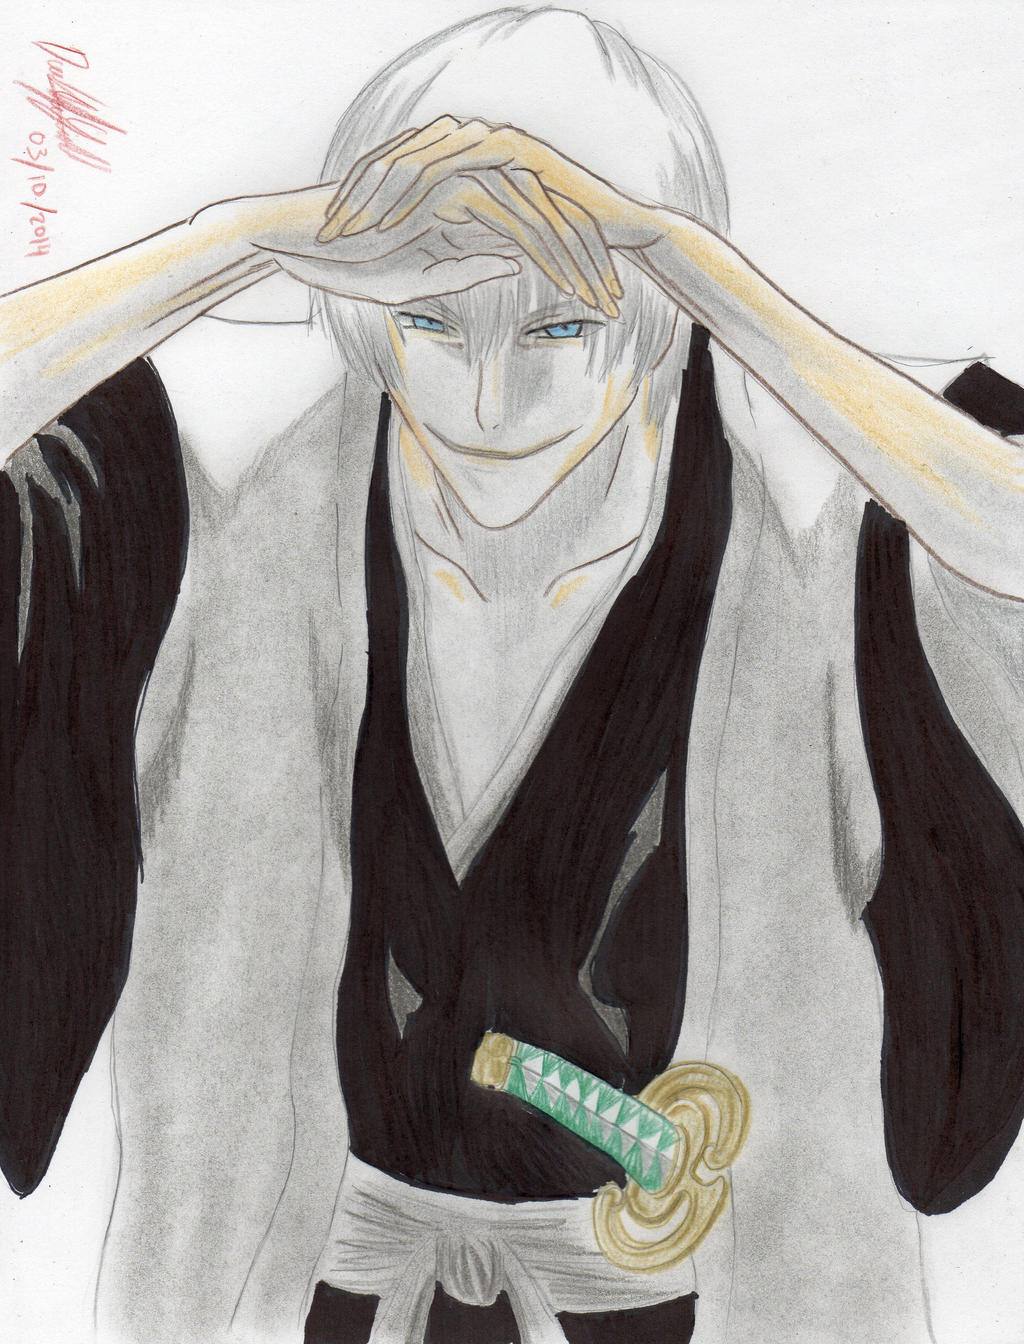 Gin Ichimaru (Bleach Cover Volume 20) by danielcamilo